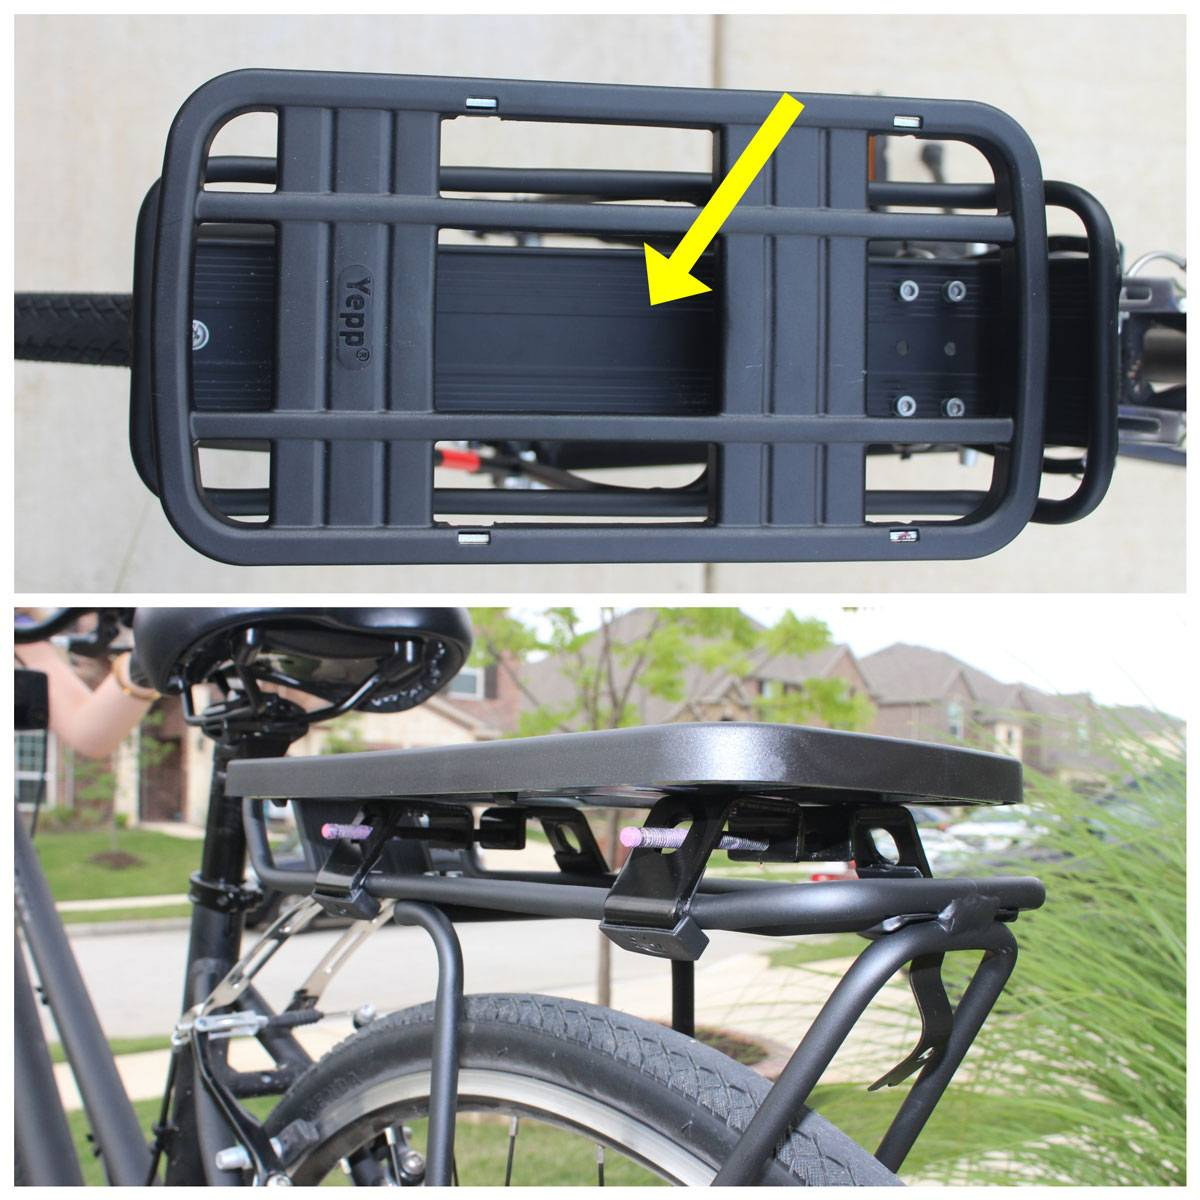 Yepp EasyFit adapter mounted on a traditional bike rack